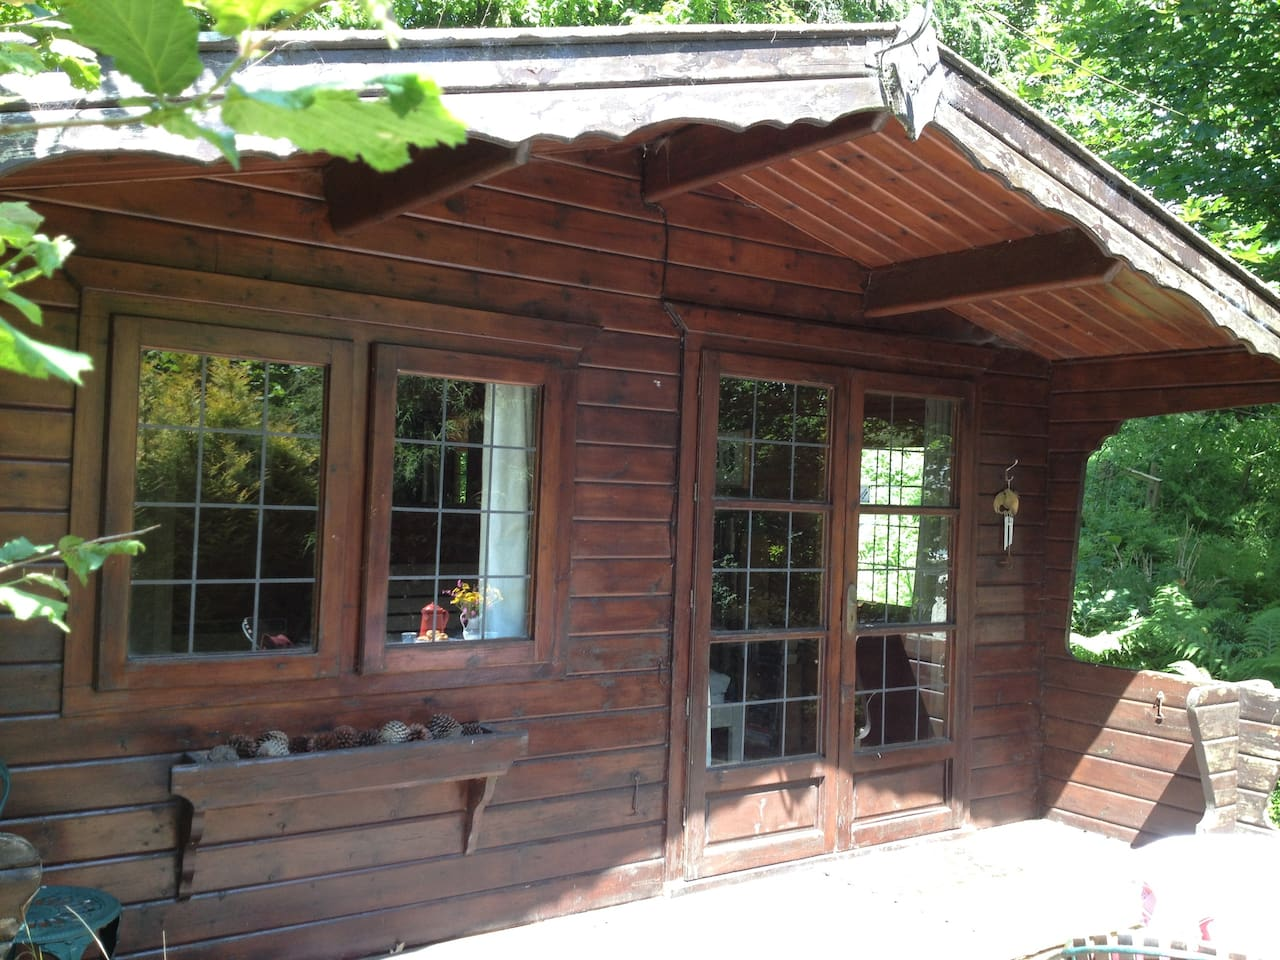 Lovely secluded wooden cabin